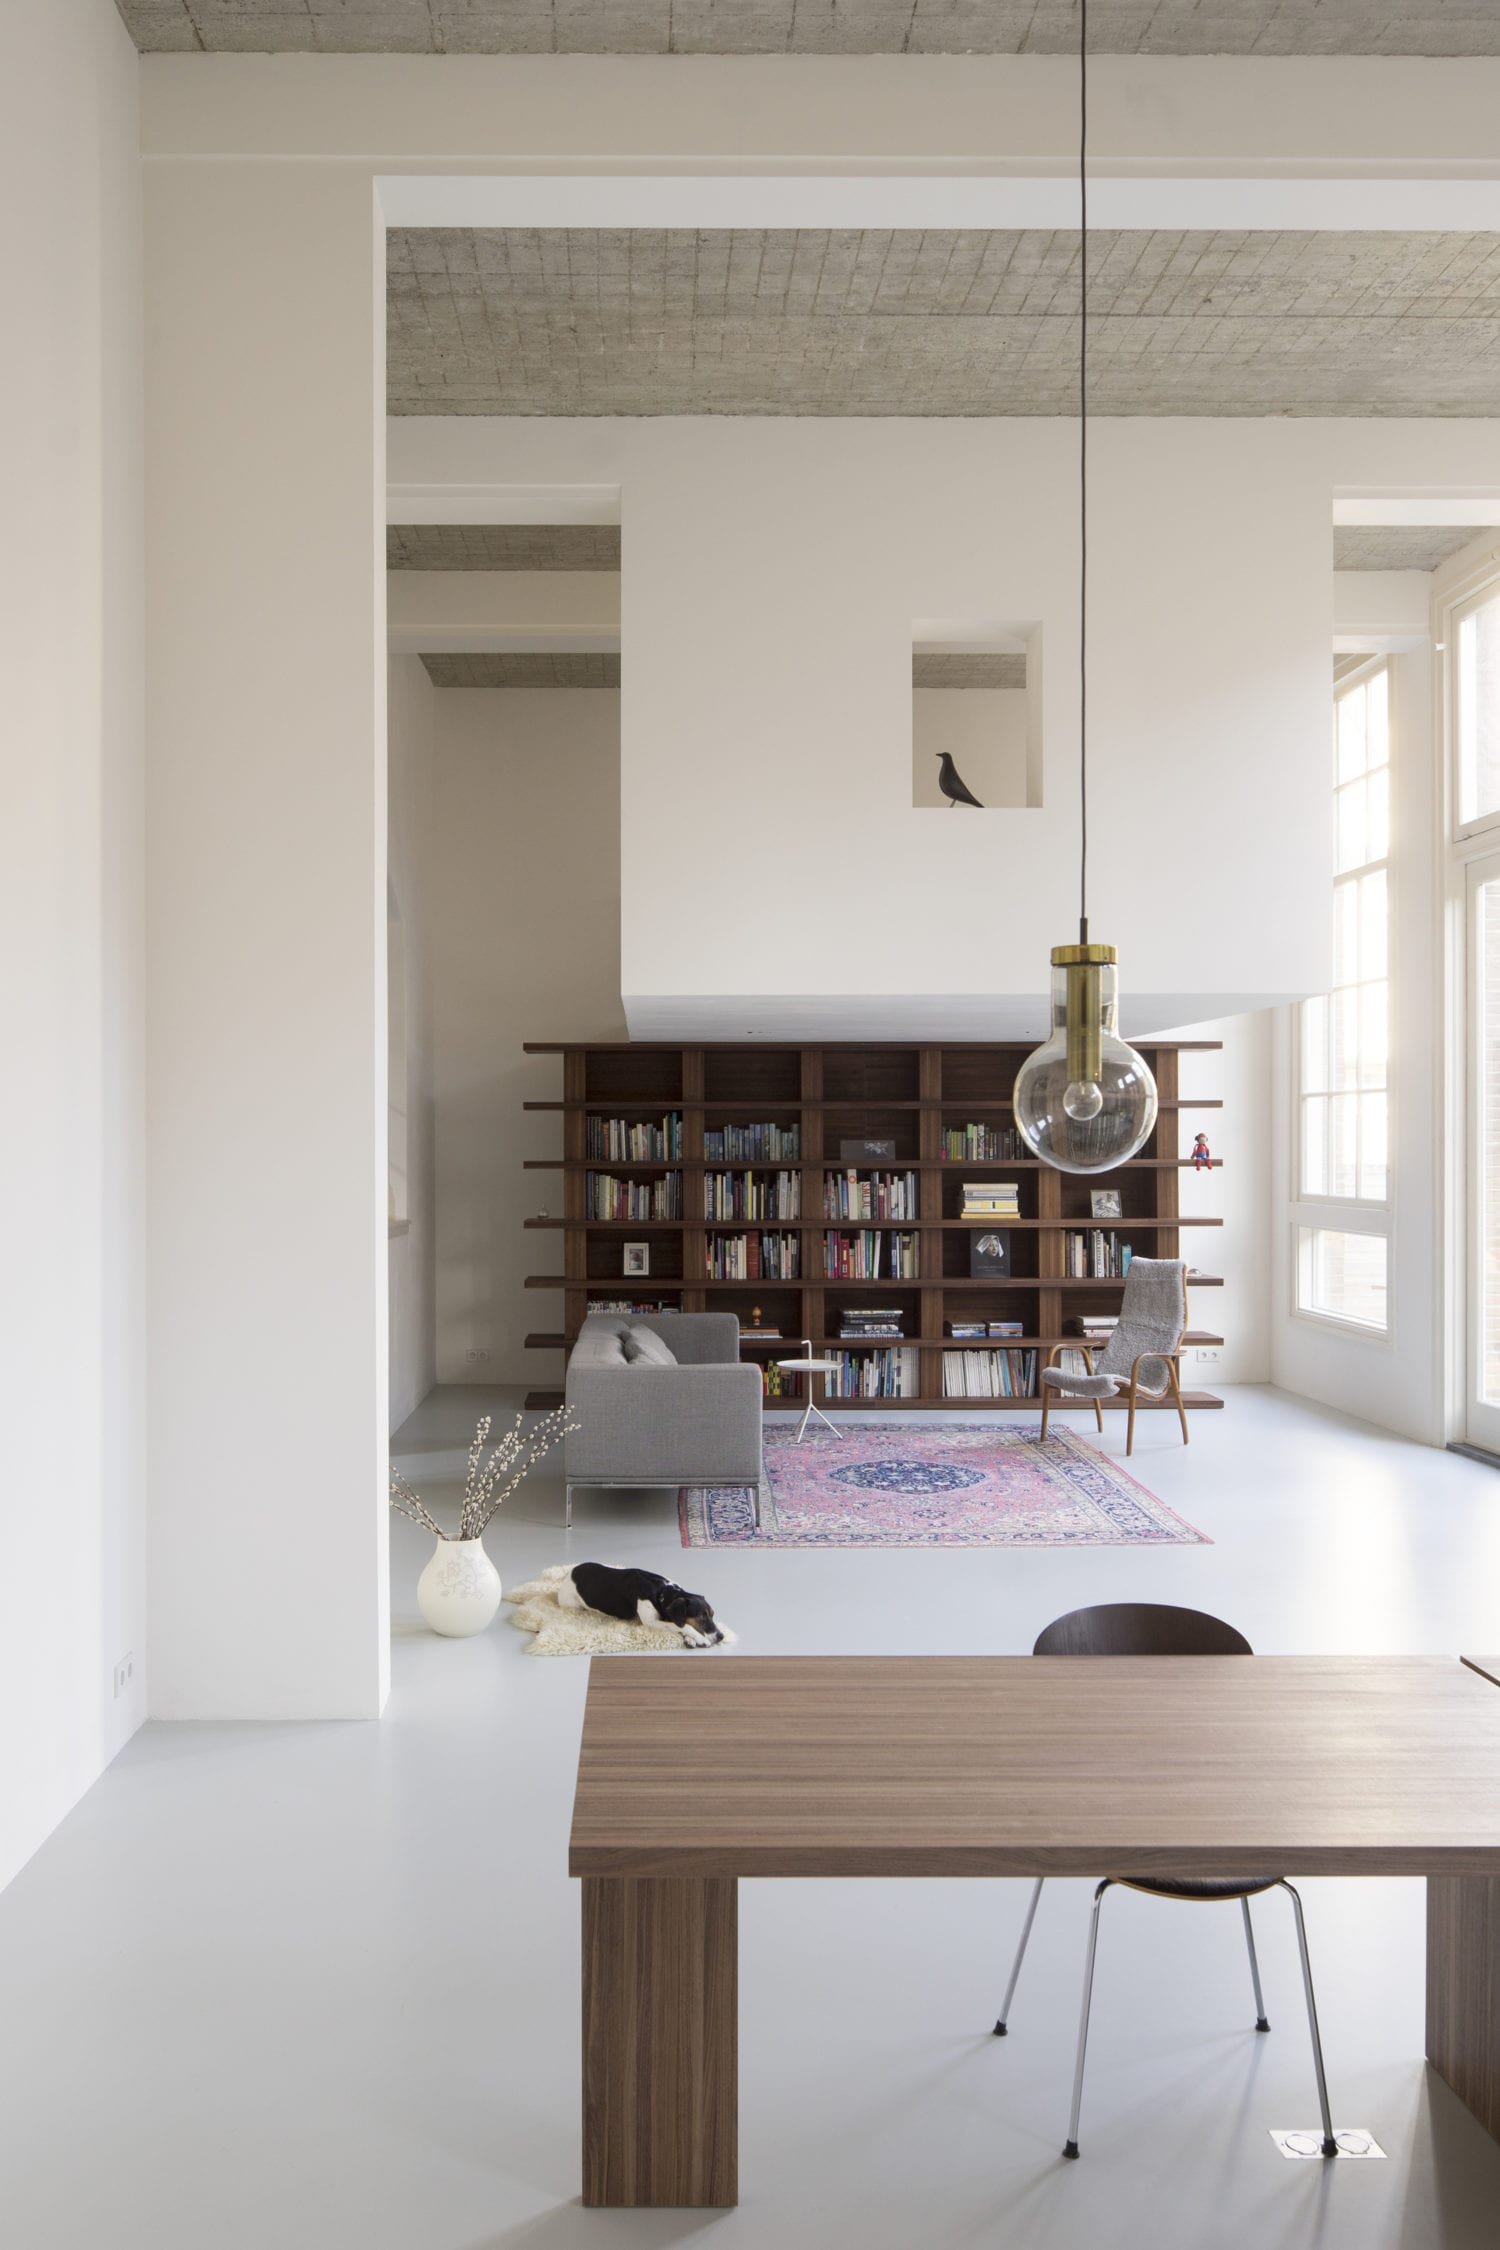 The Nordroom - A Minimalistic Loft in a Former School Building